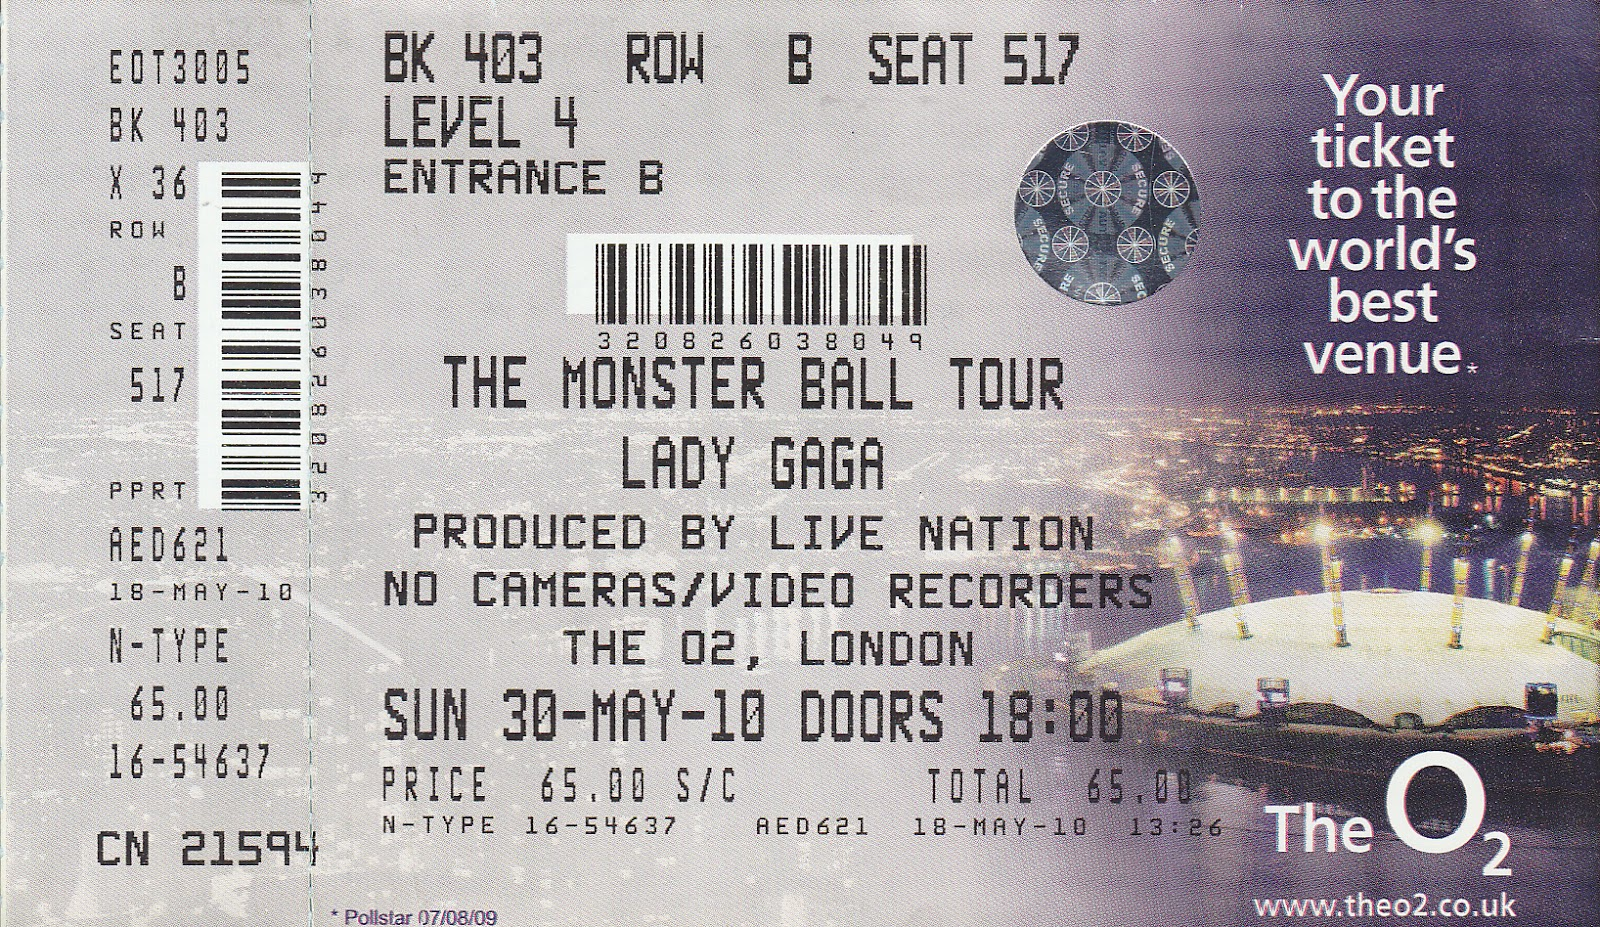 Sight And Sound Concert Tickets From London